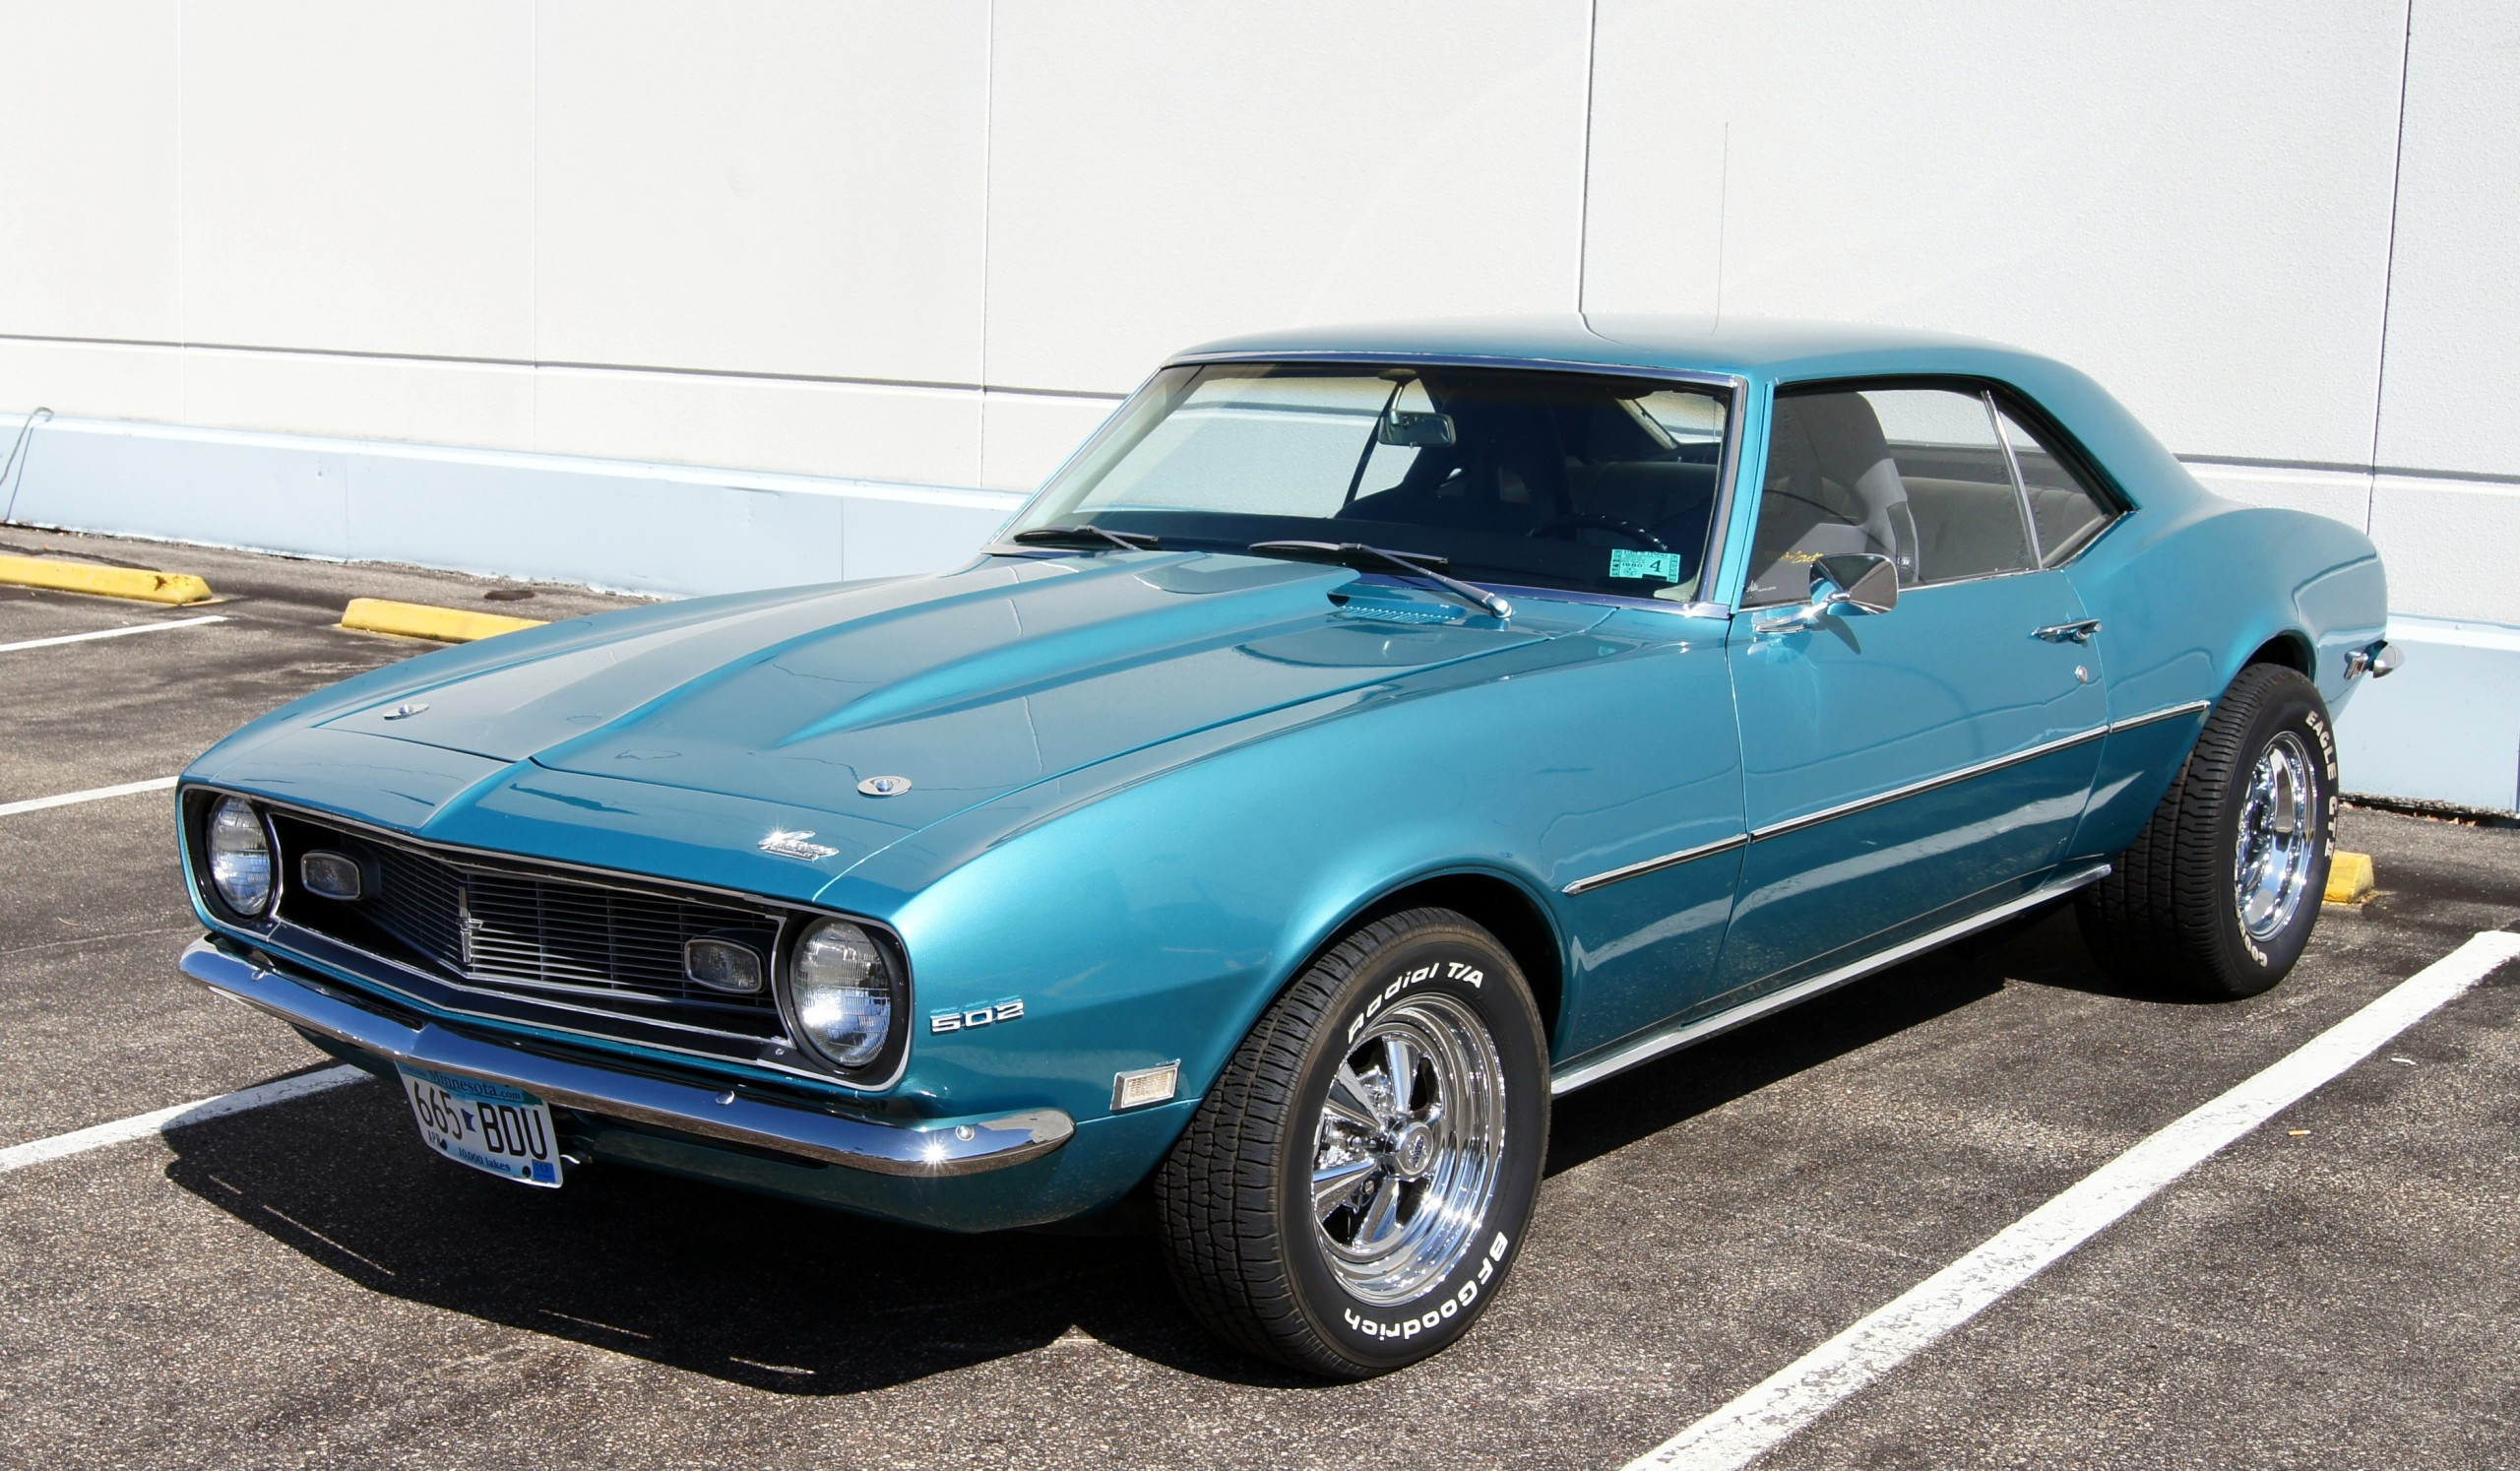 68 Chevrolet Camaro Muscle Gta